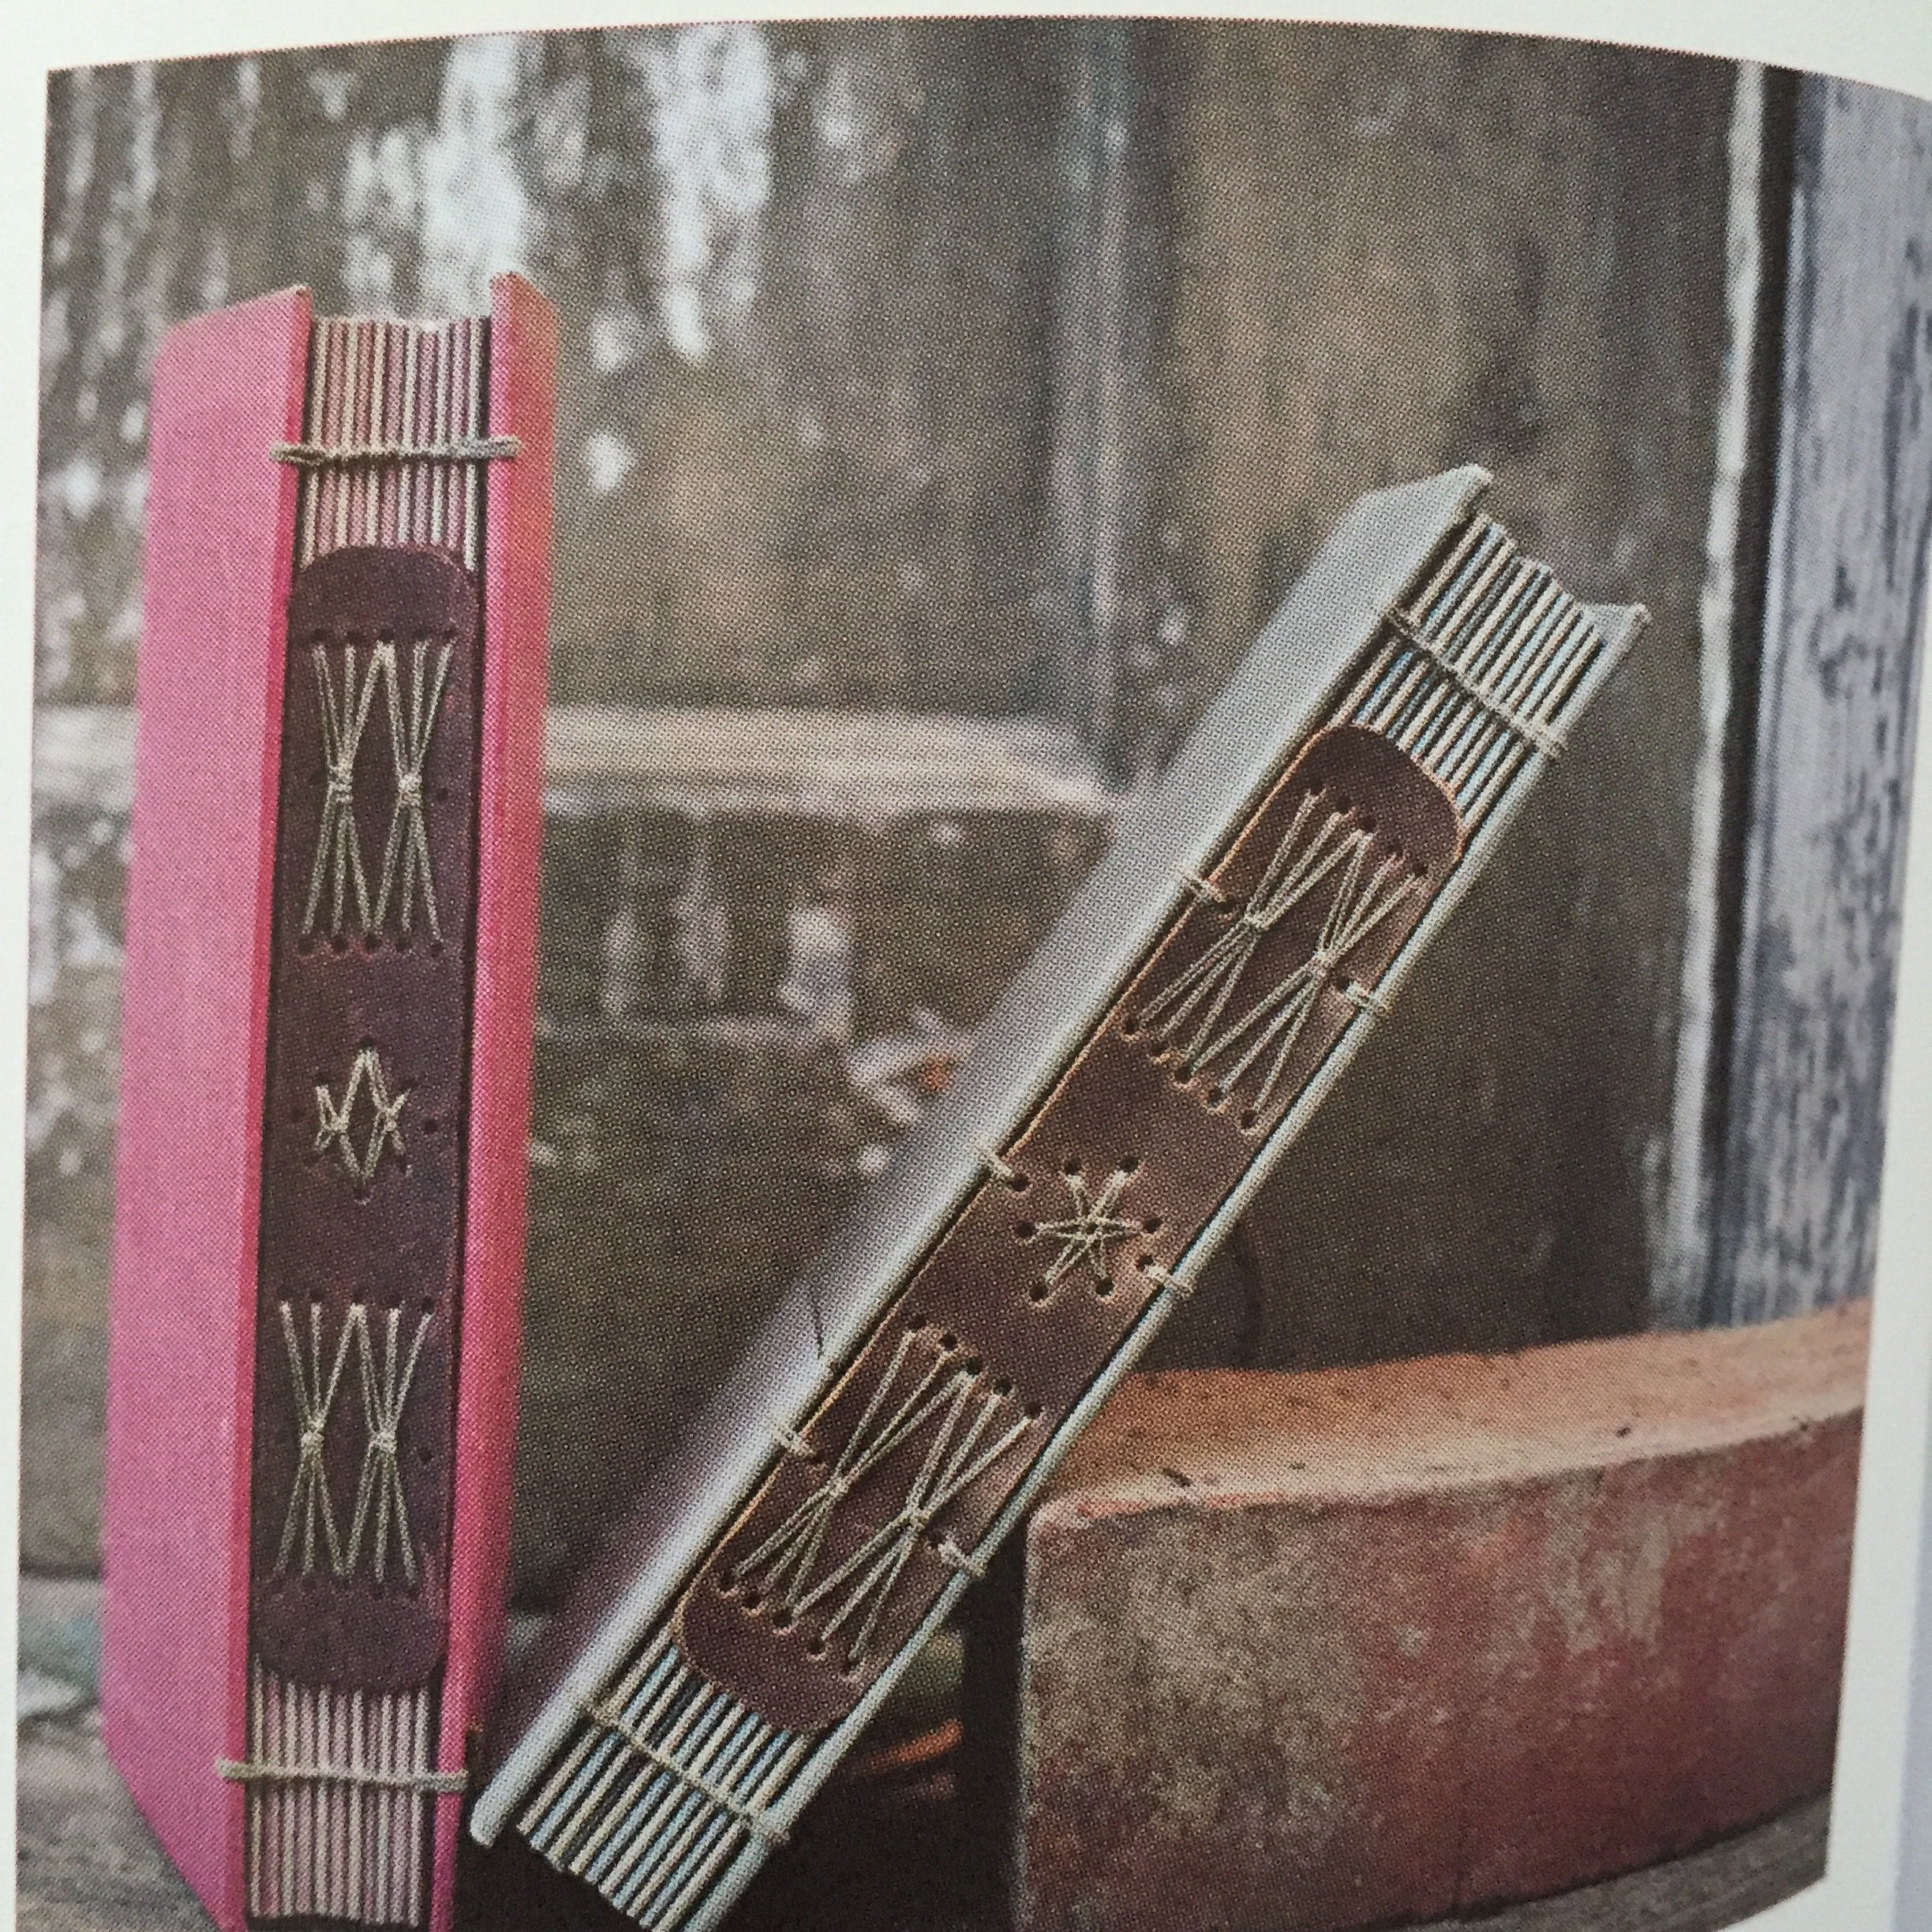 Pin By Paul McFedries On Creative Bookbinding Ideas